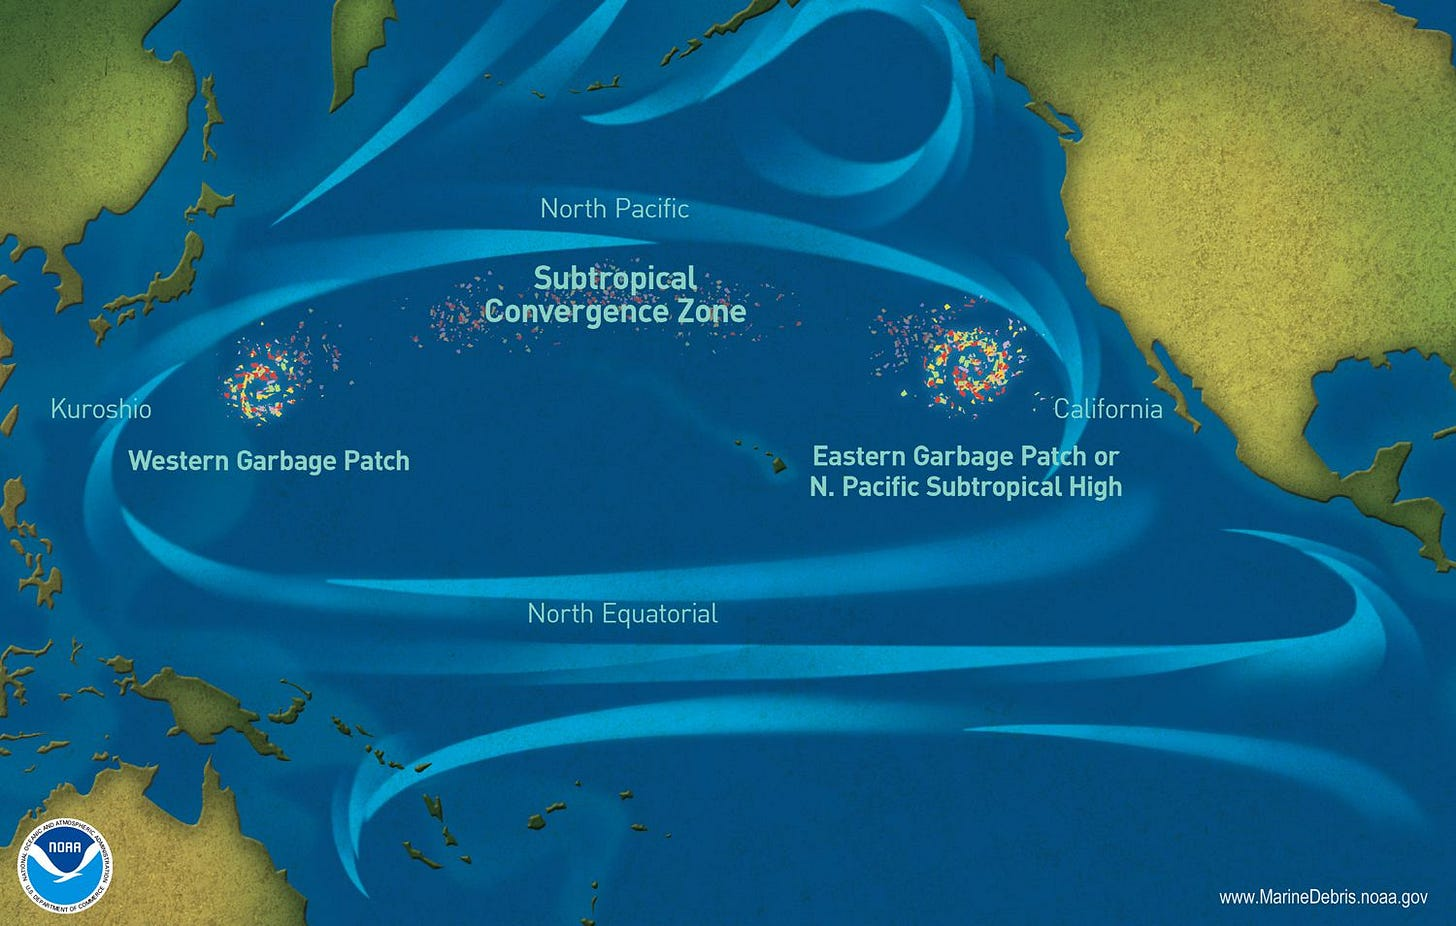 The Great Pacific Garbage Patch is a collection of marine debris in the North Pacific Ocean. Also known as the Pacific trash vortex, the garbage patch is actually two distinct collections of debris bounded by the massive North Pacific Subtropical Gyre.